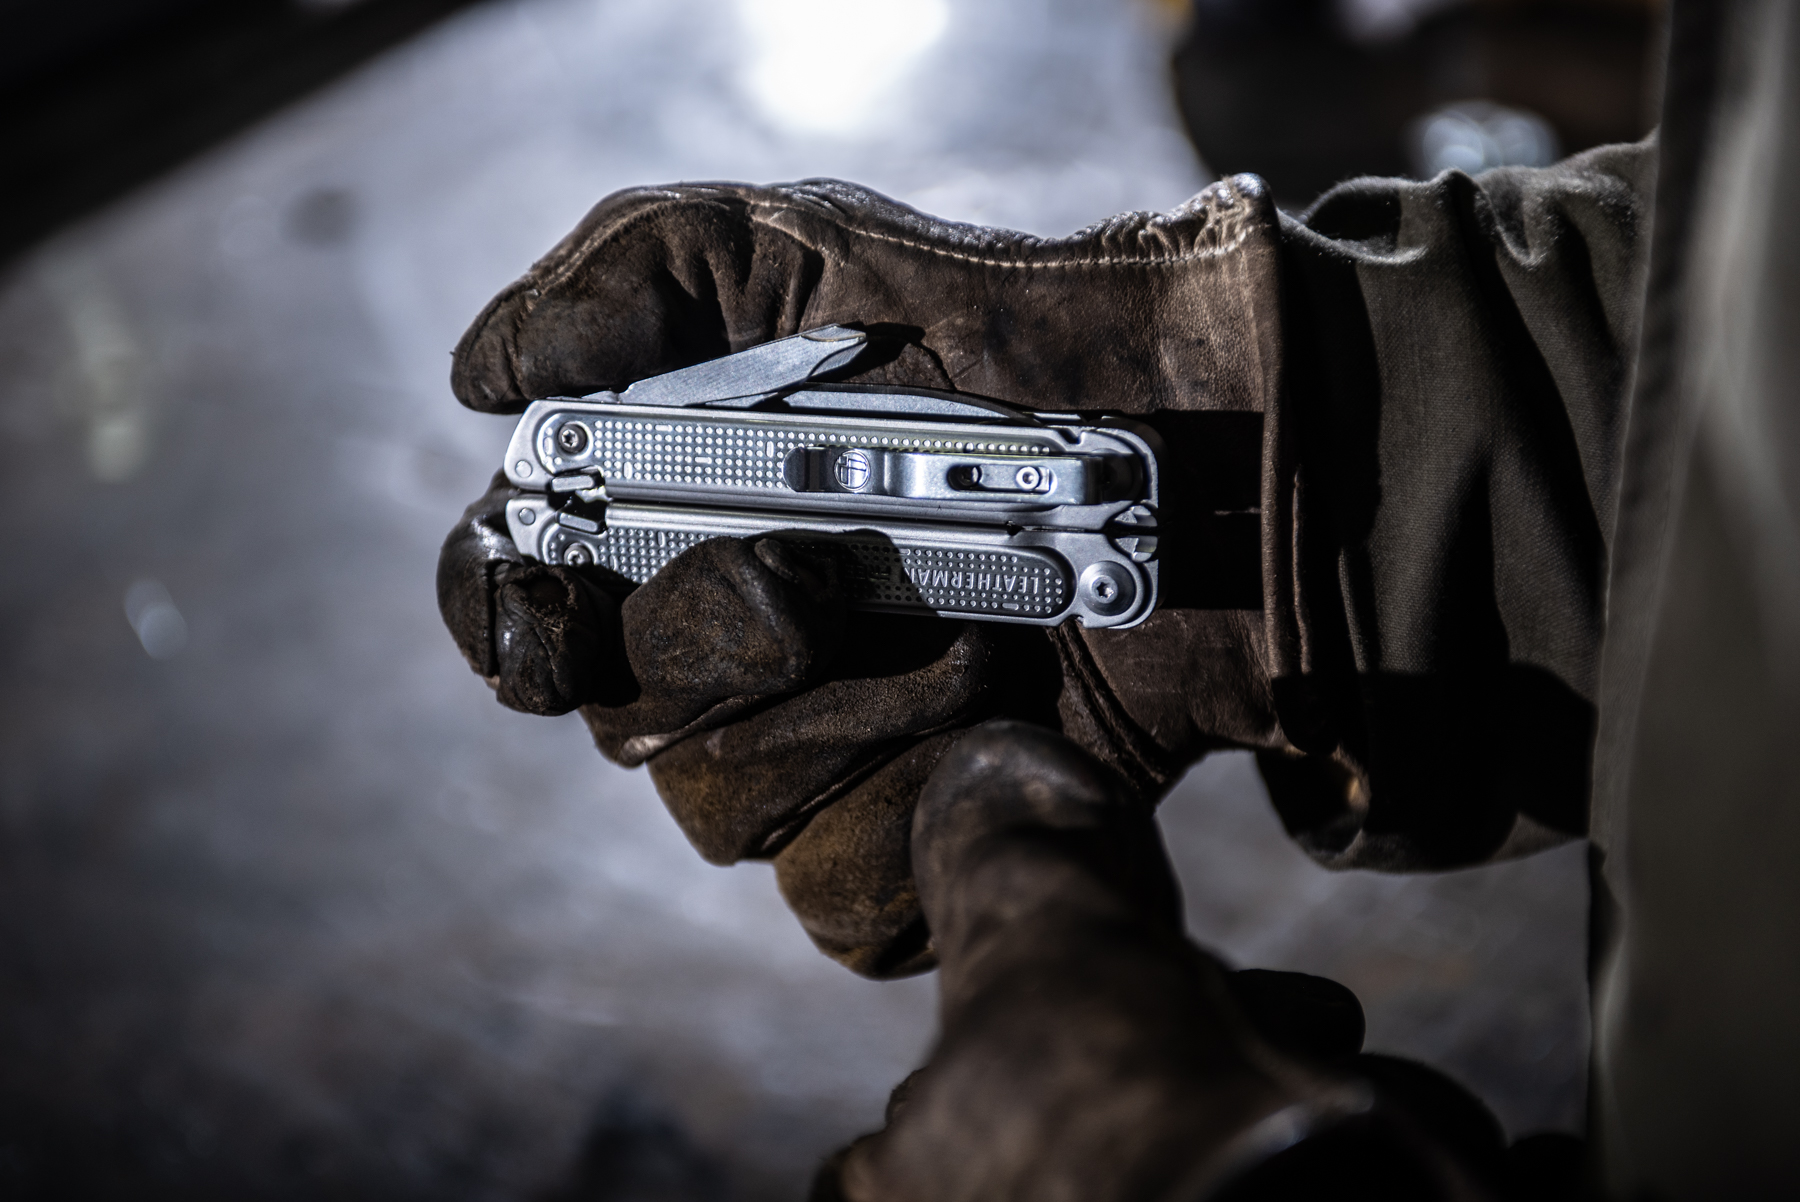 Leatherman Free in welders hand. Isaac Miller Photography  | Agriculture & Industry Photographer  |  Commercial & Editorial photography  |   Missoula + San Antonio